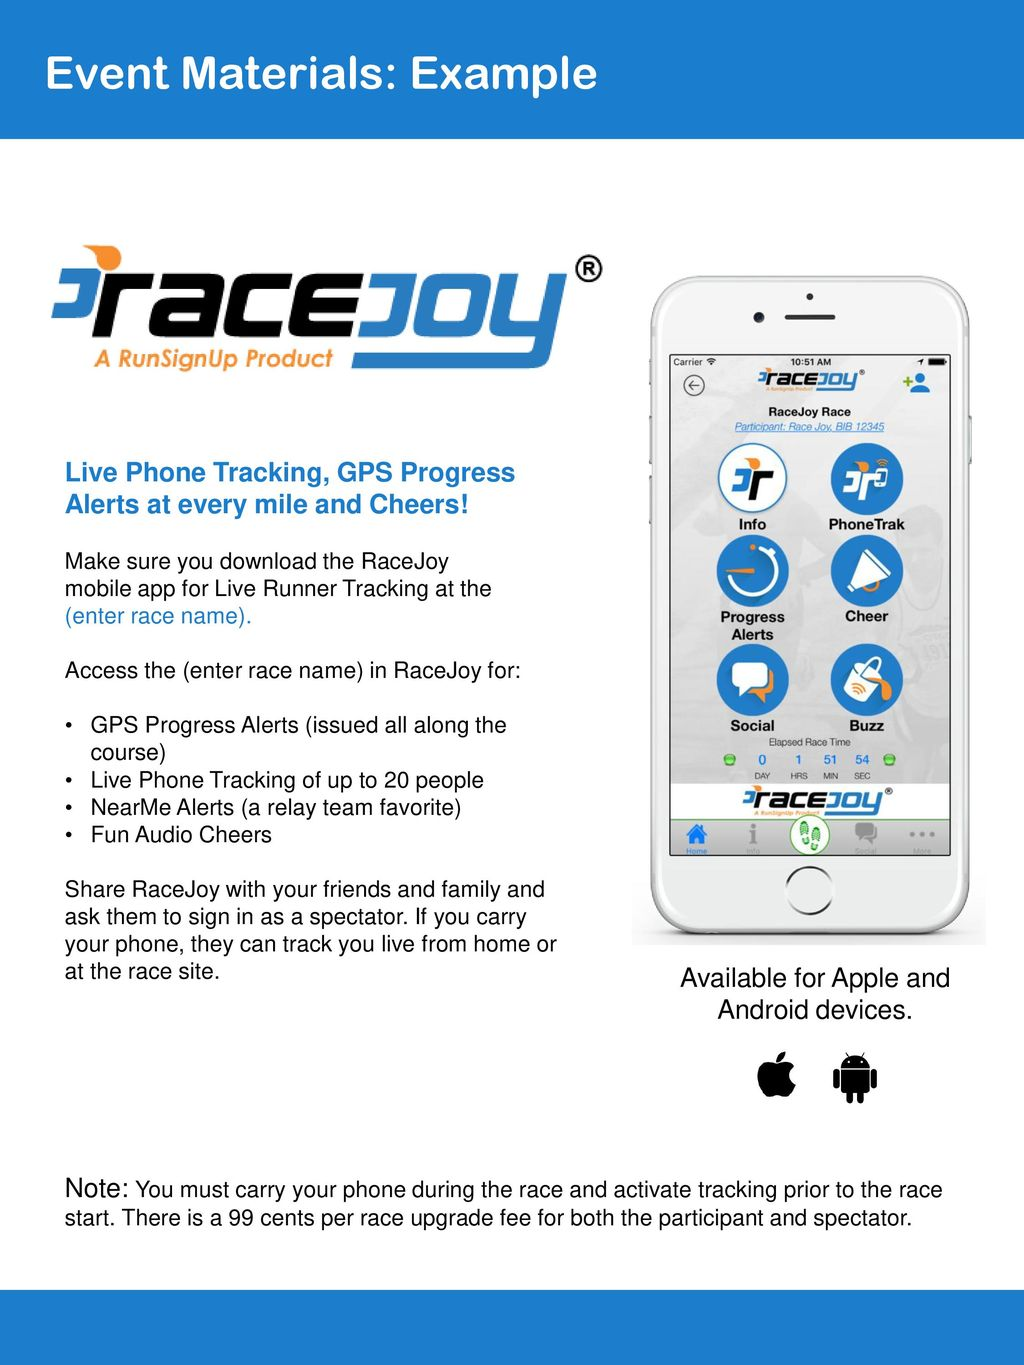 RaceJoy Ready Promotion Toolkit (PhoneTrak, Basic) - ppt download